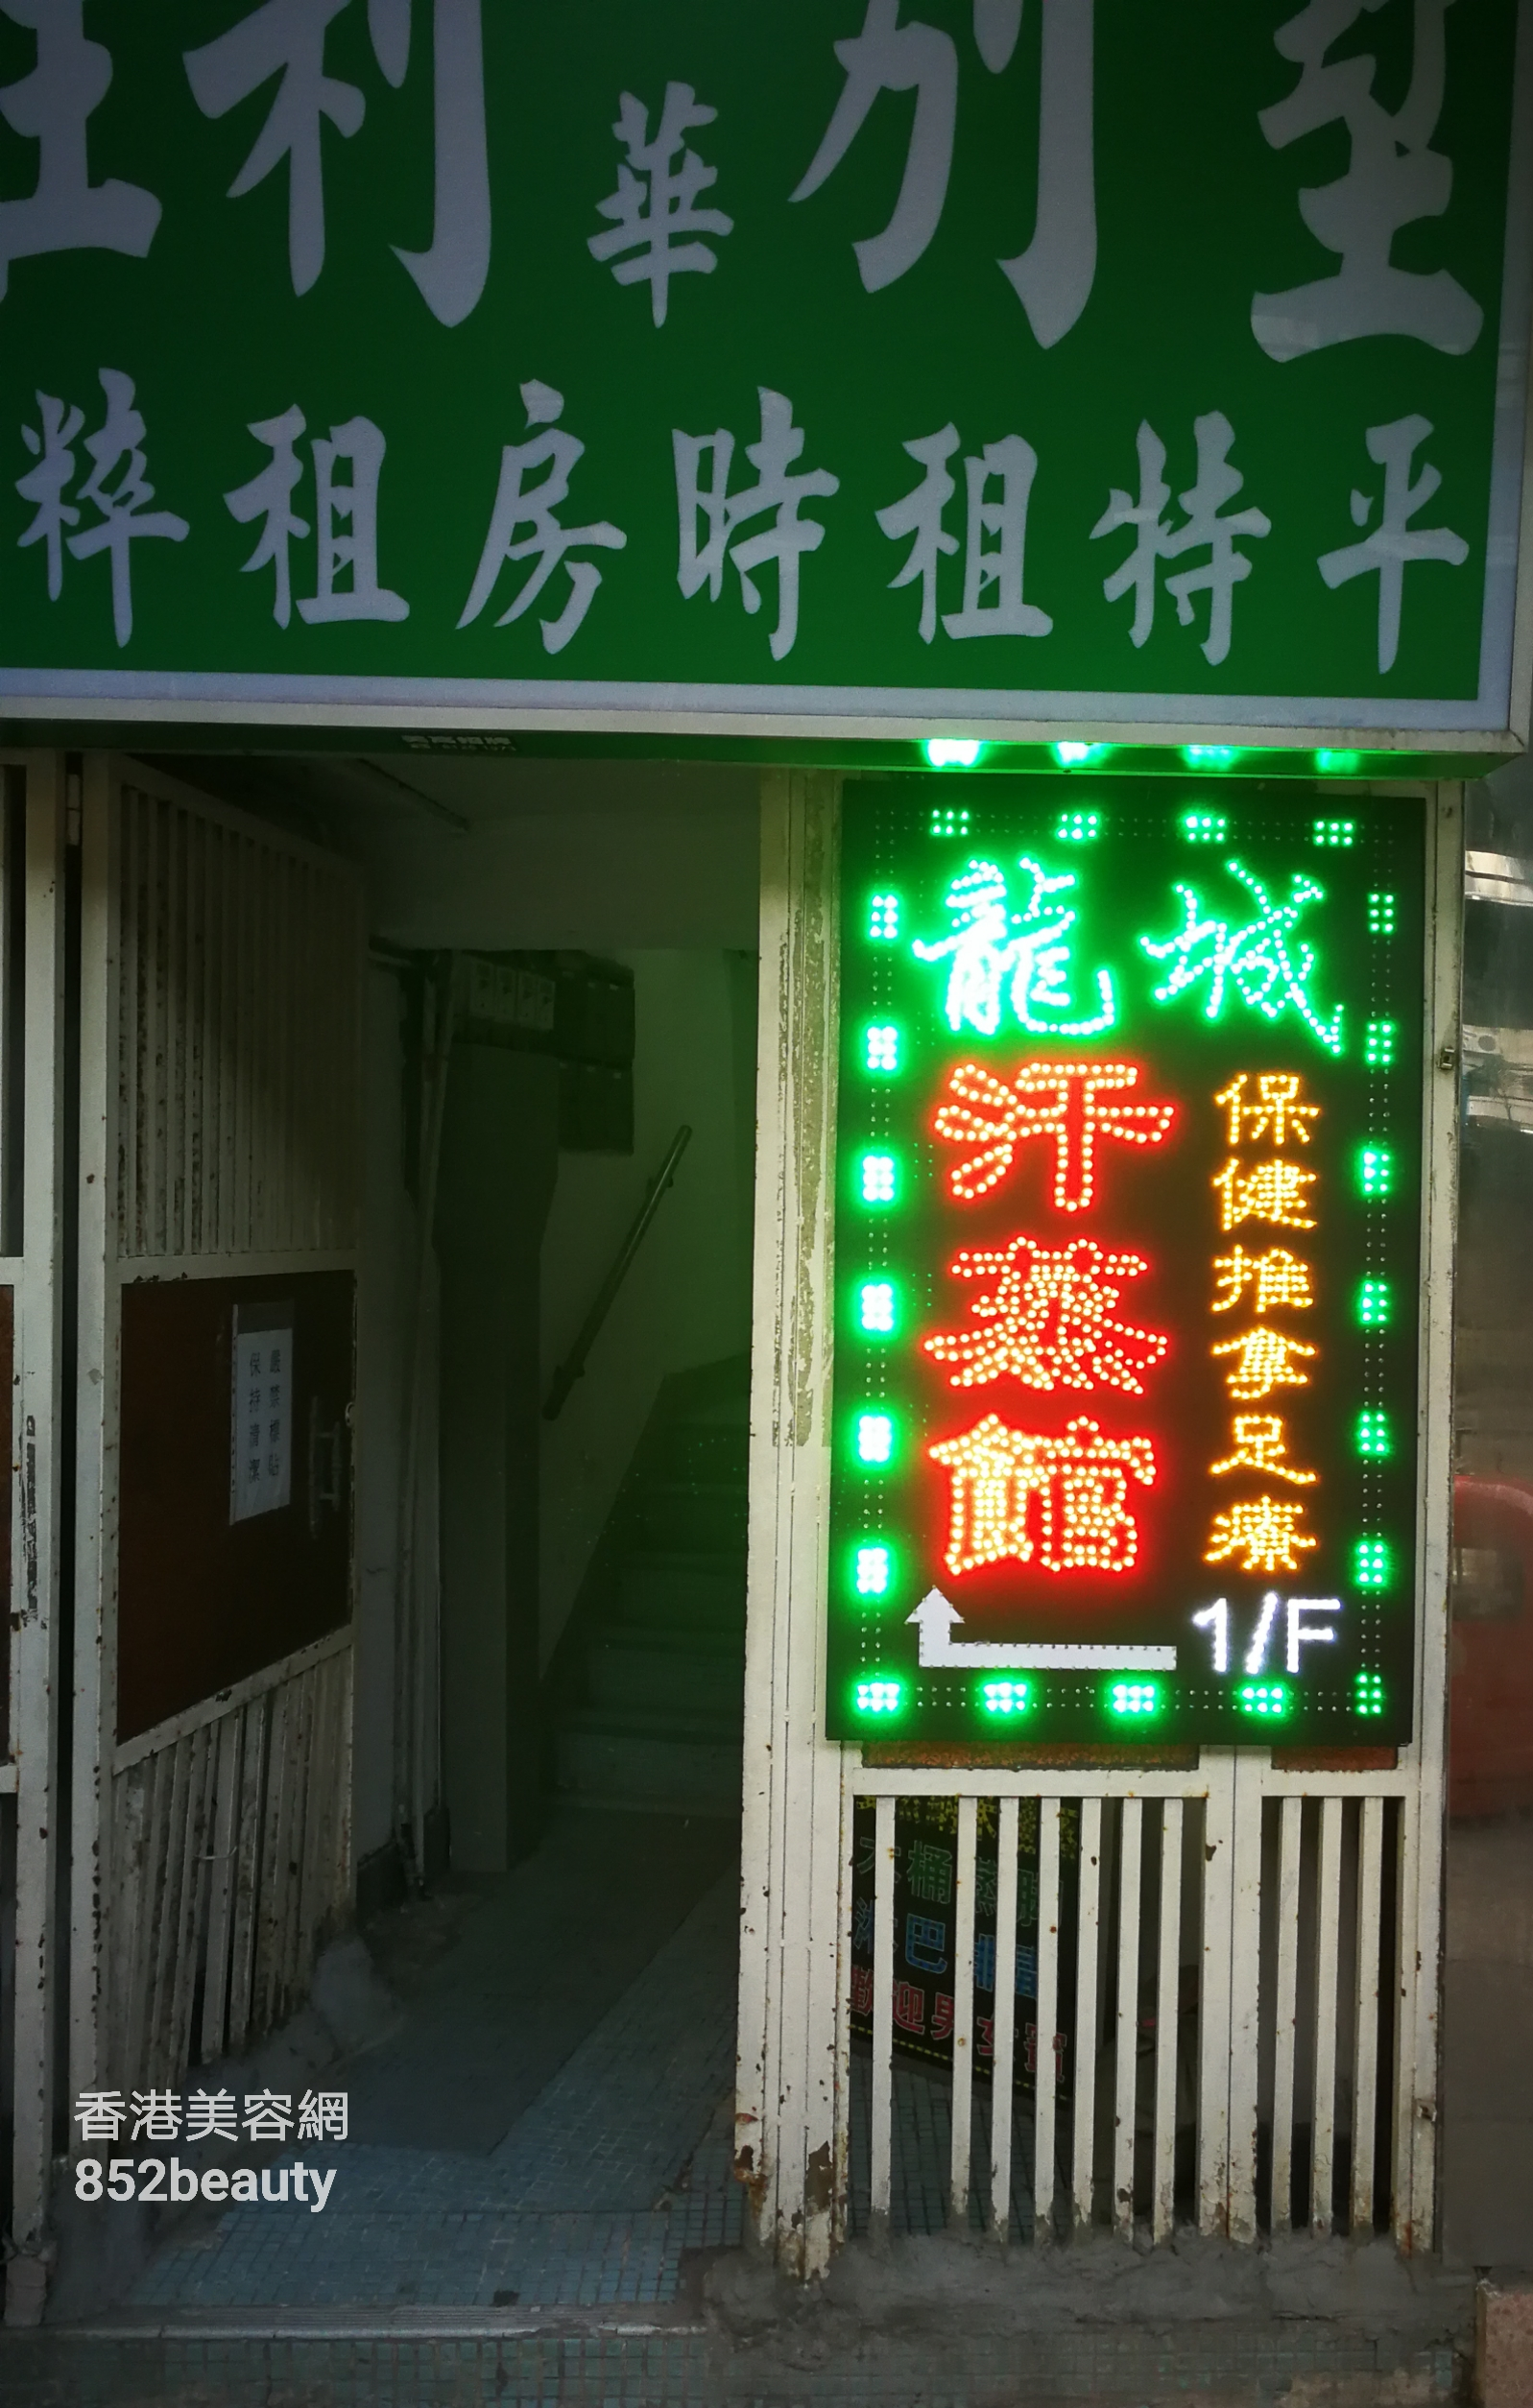 香港美容網 Hong Kong Beauty Salon 美容院 / 美容師: 龍城汗蒸館